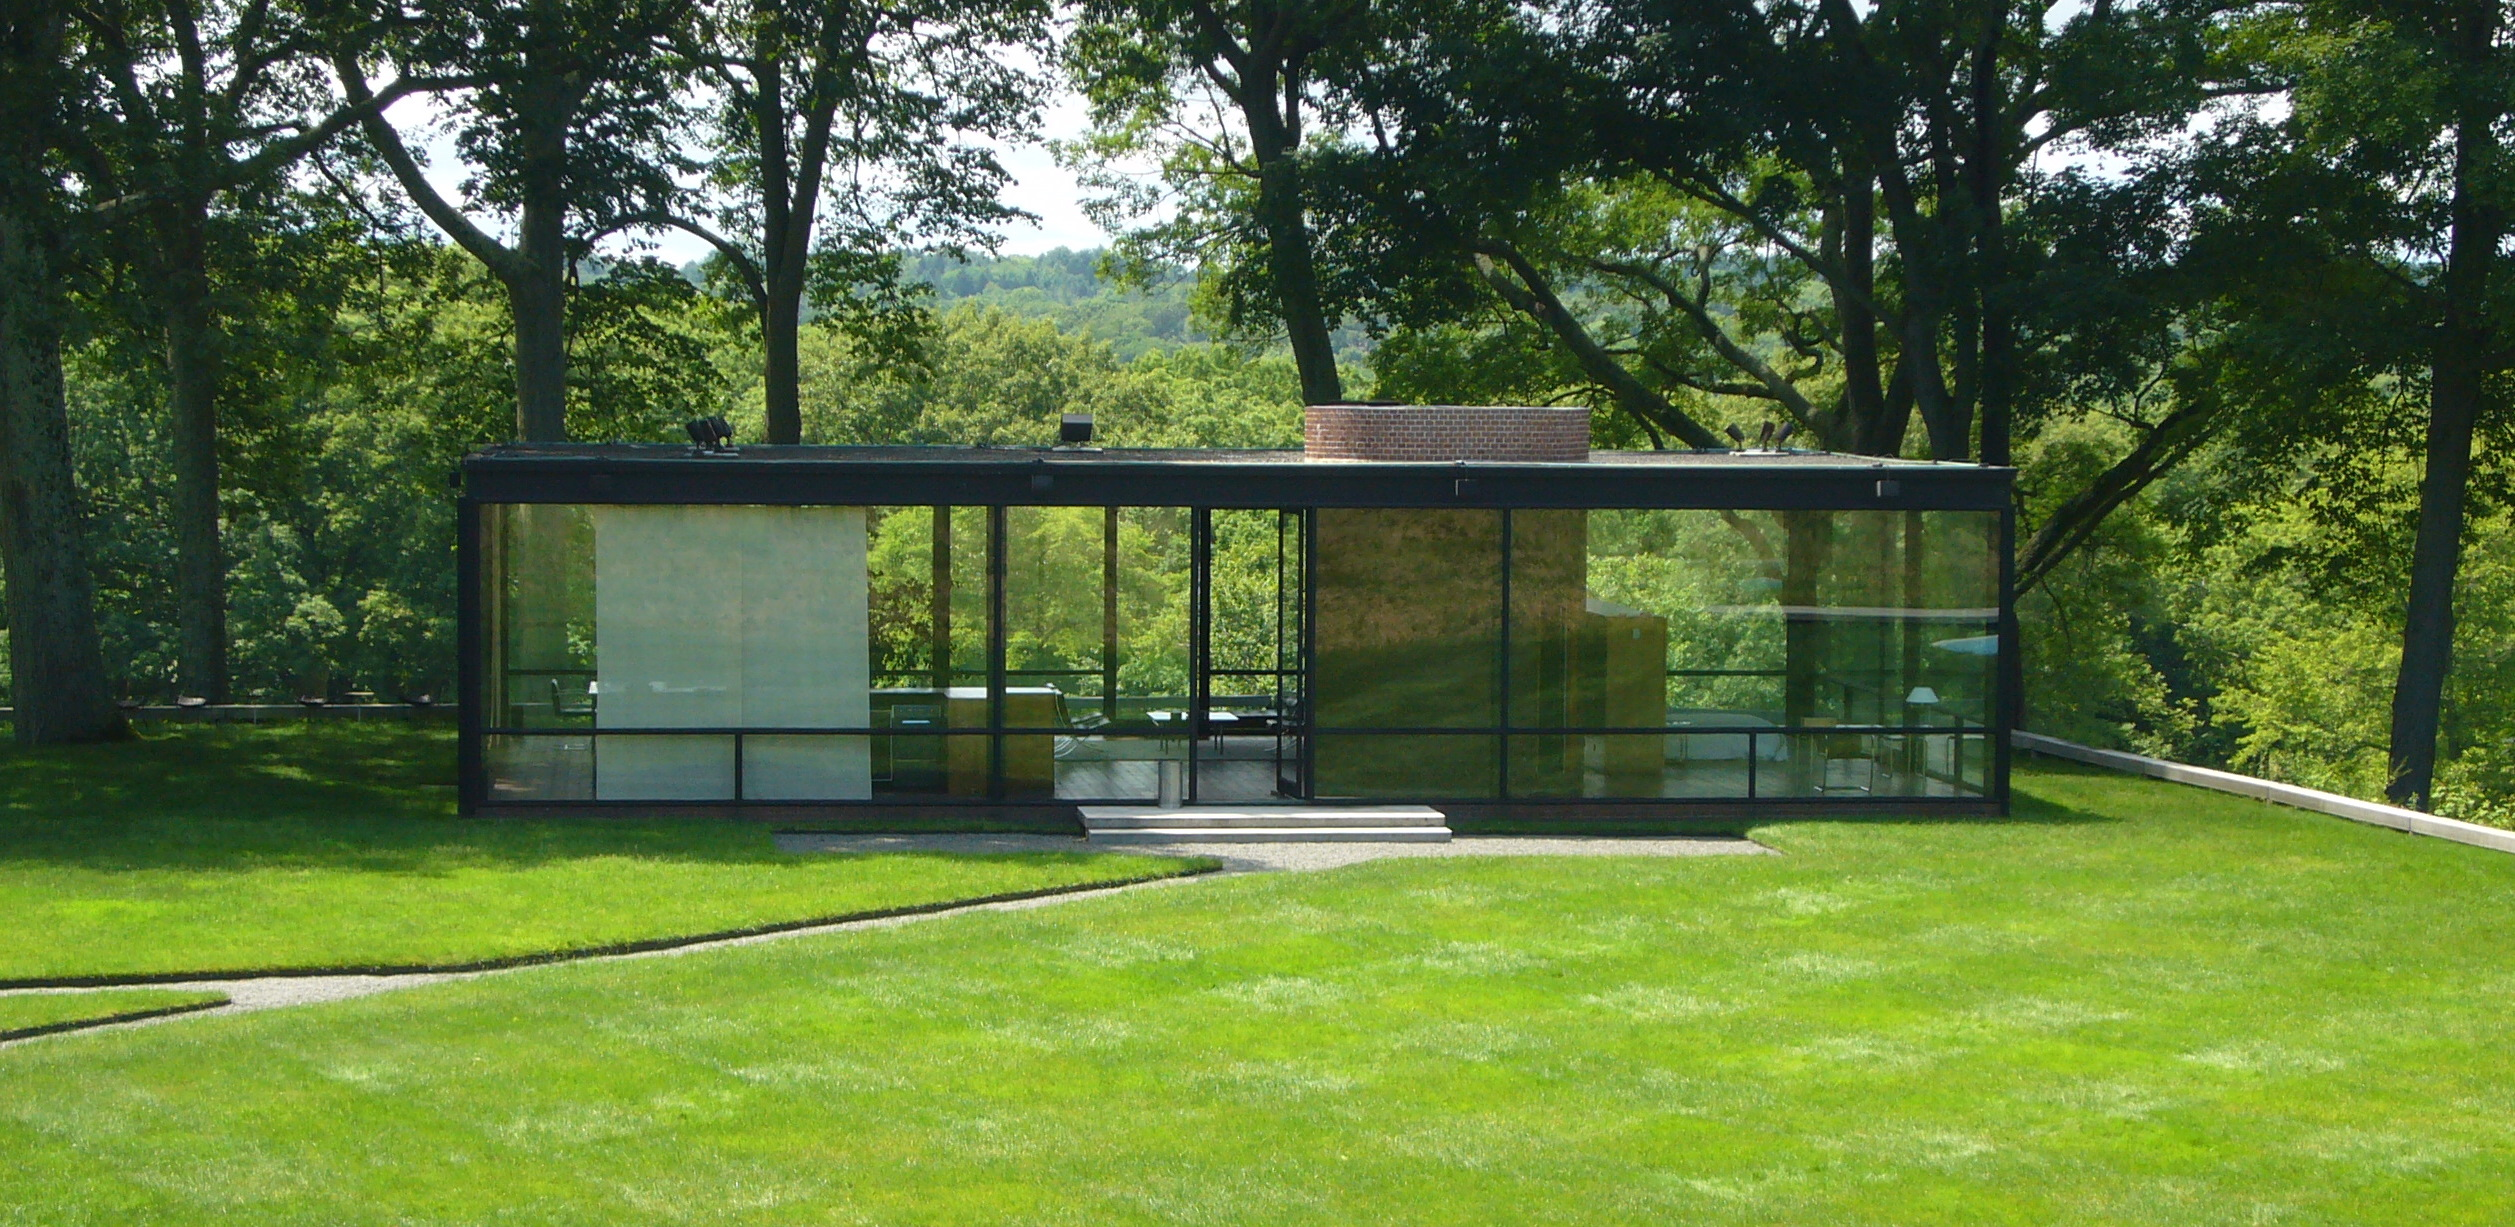 Glass House by Philip Johnson (exterior) in New Canaan, CT, USA Author:	Staib source: wikimedia commons